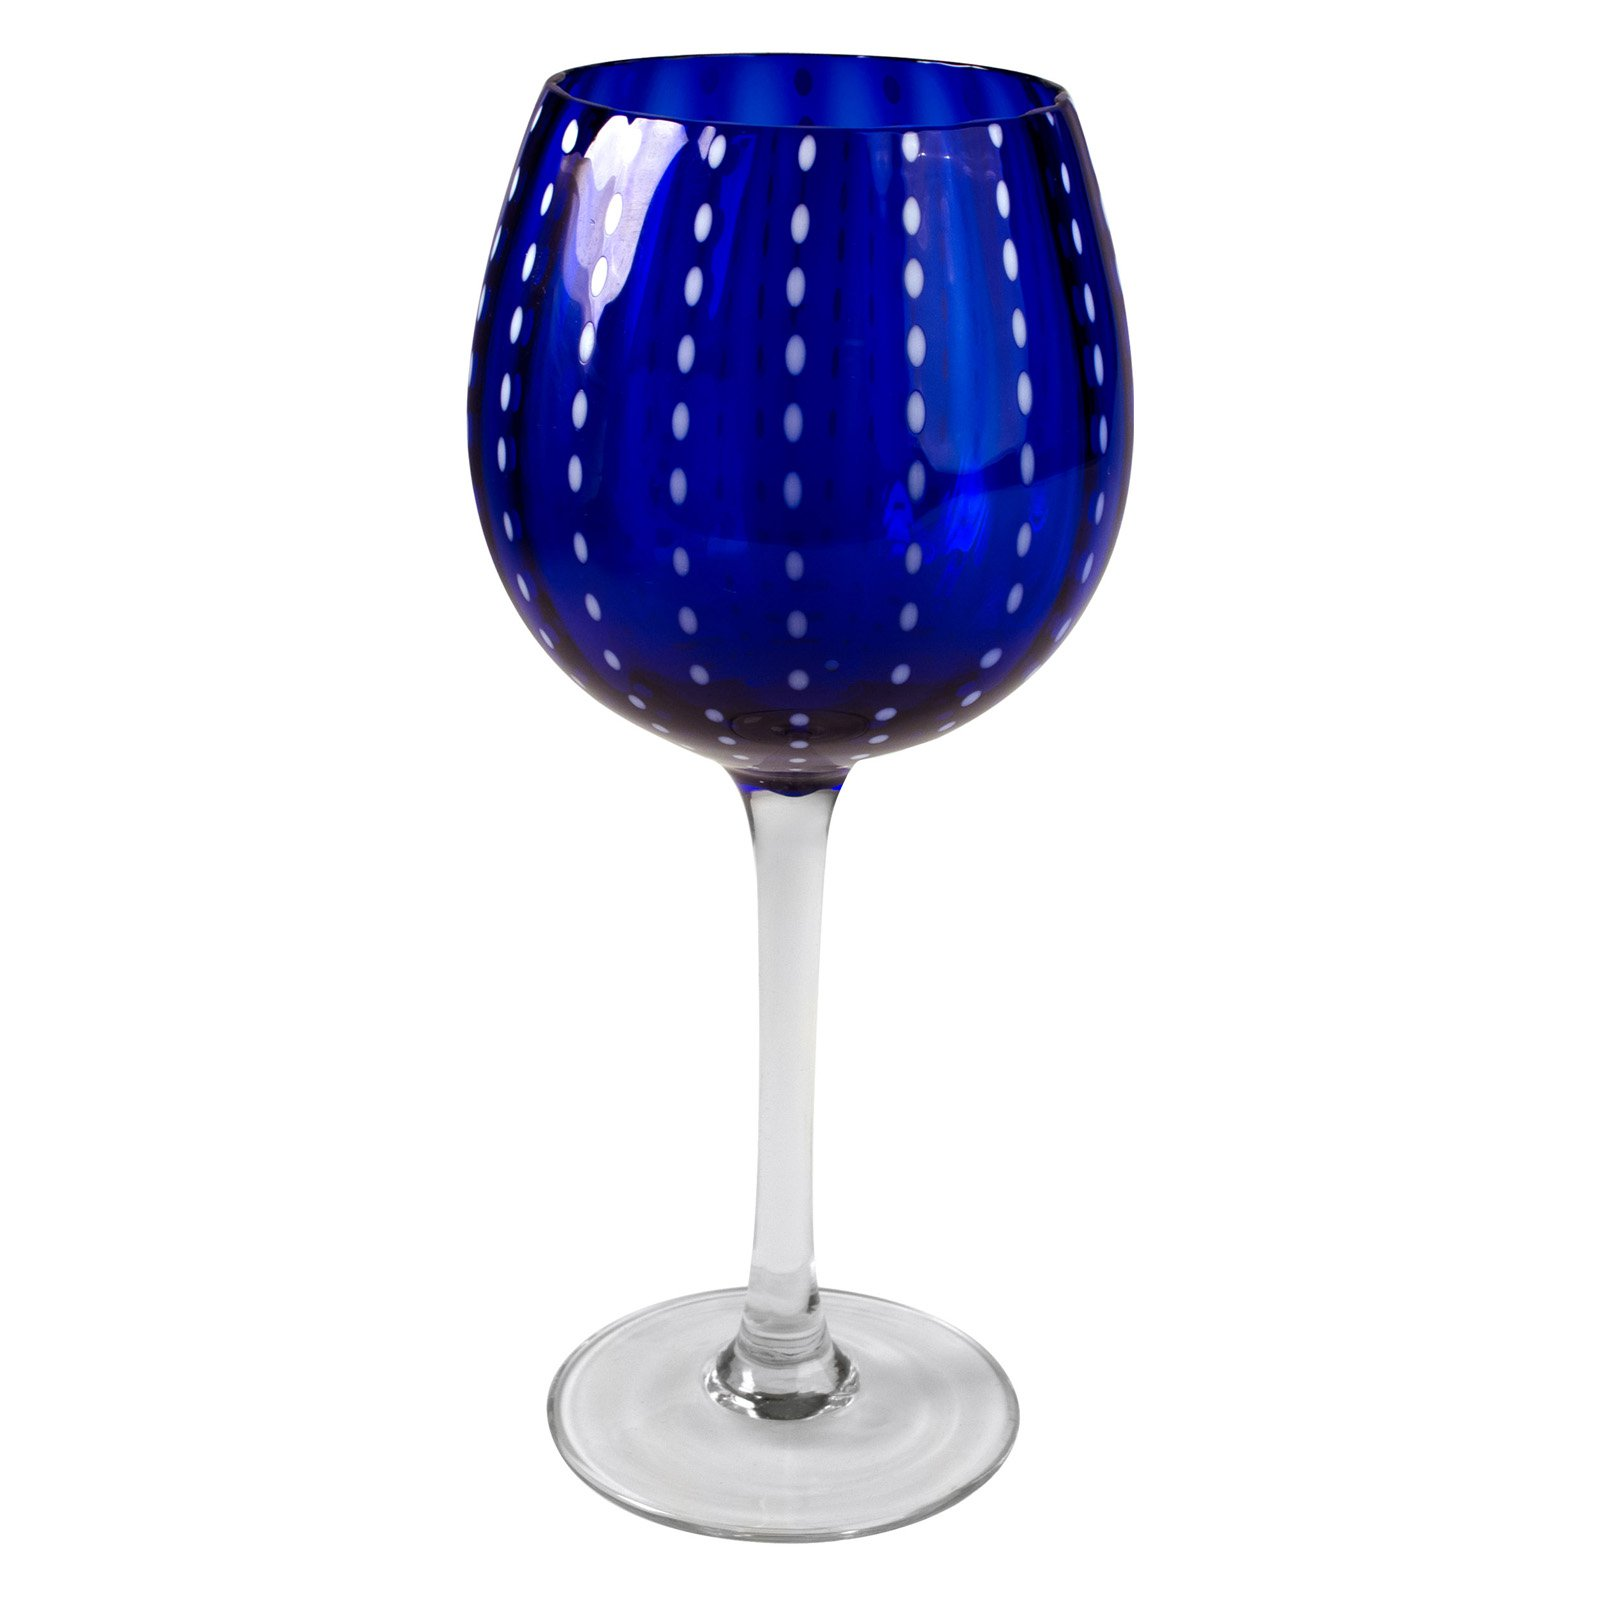 Artland Inc. Cobalt Cambria Goblet Glasses - Set of 4